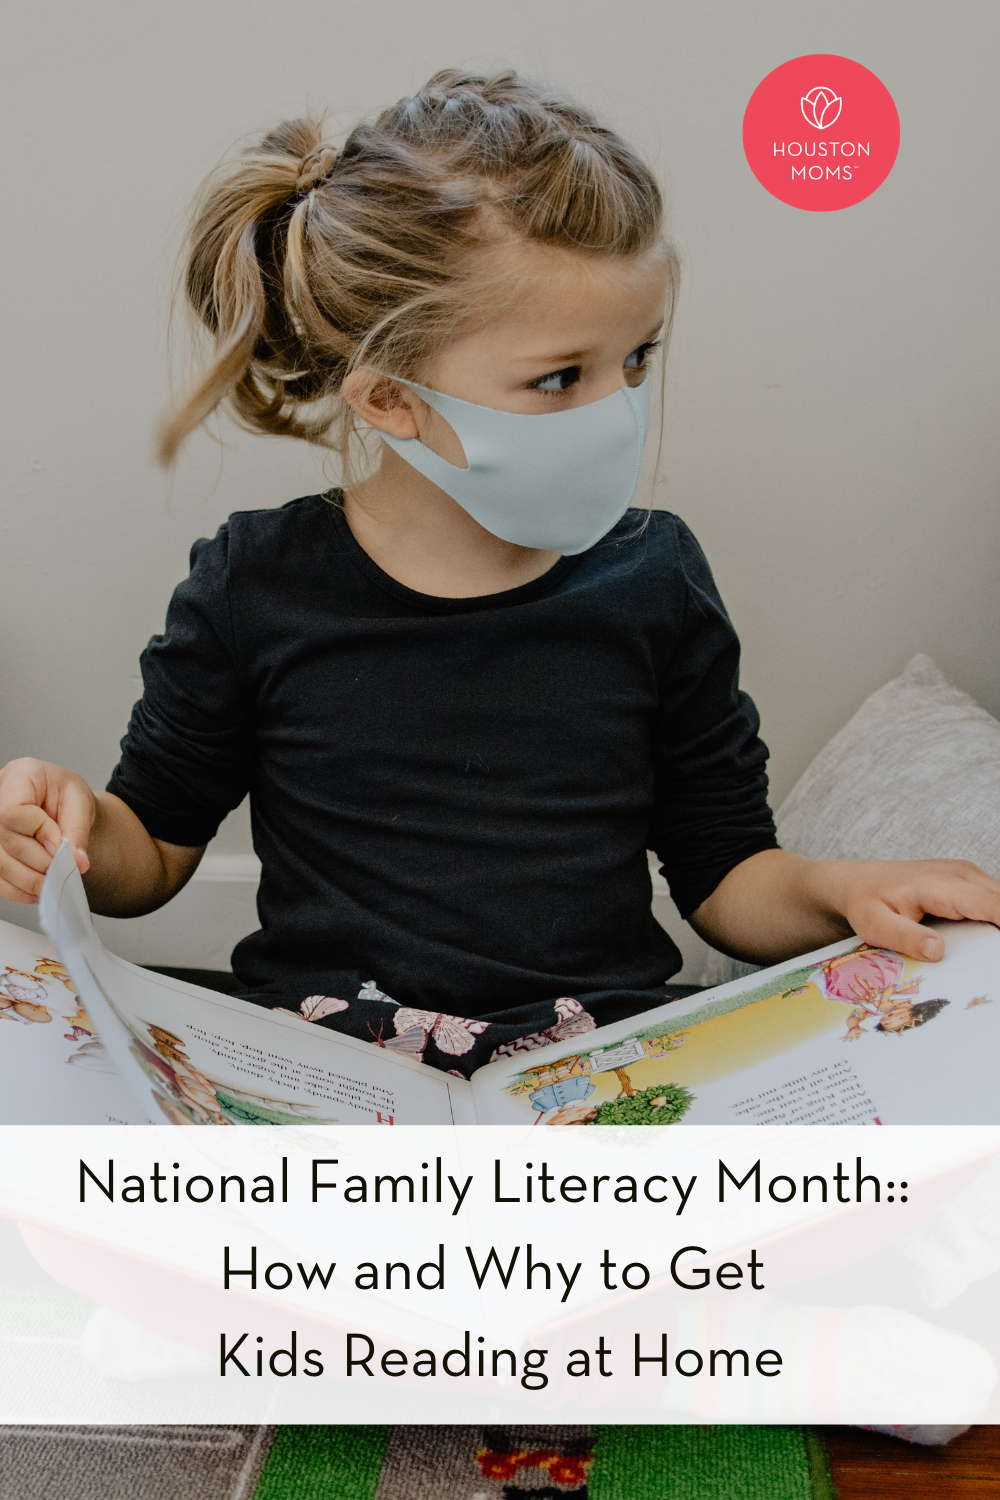 "Houston Moms ""National Family Literacy Month:: How and Why to Get Kids Reading at Home"" #houstonmoms #houstonmomsblog #momsaroundhouston"